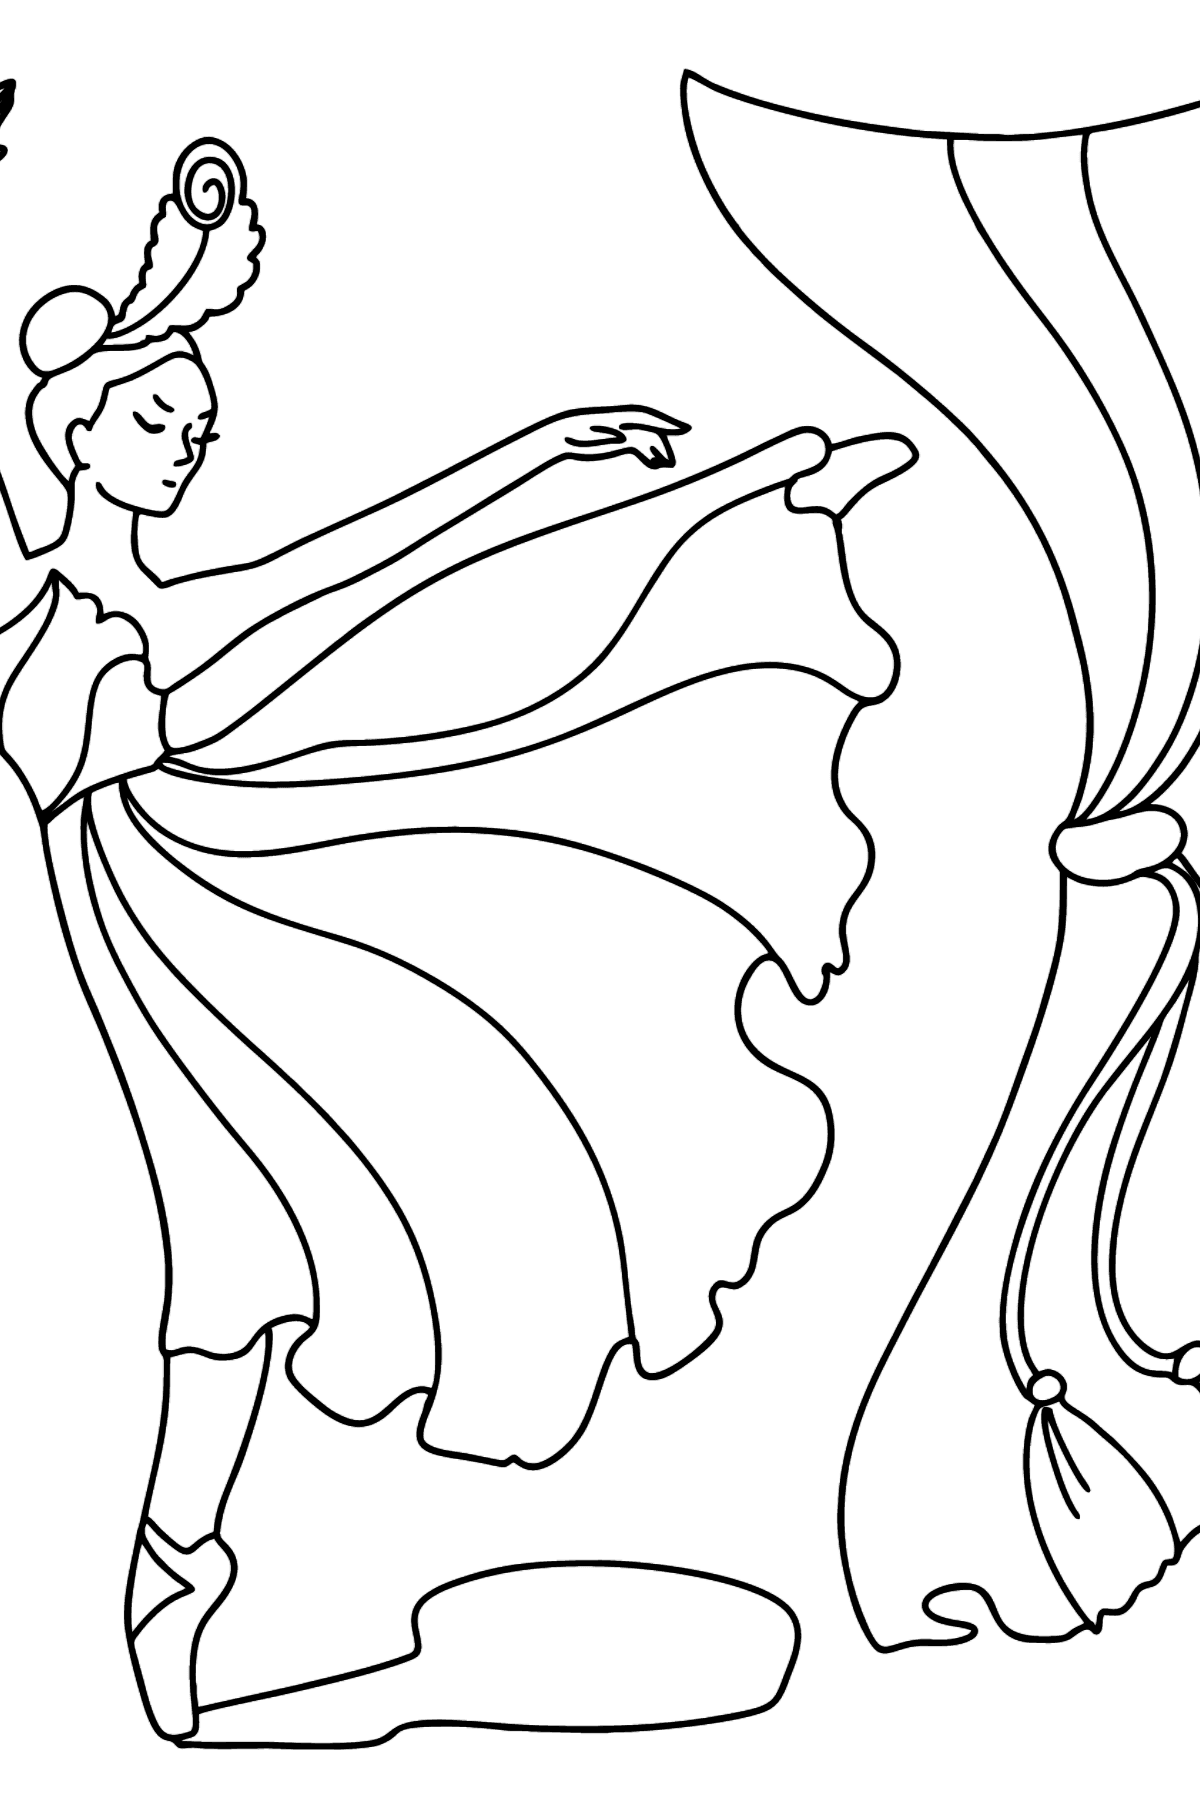 Ballerina in Red Dress coloring page - Coloring Pages for Kids